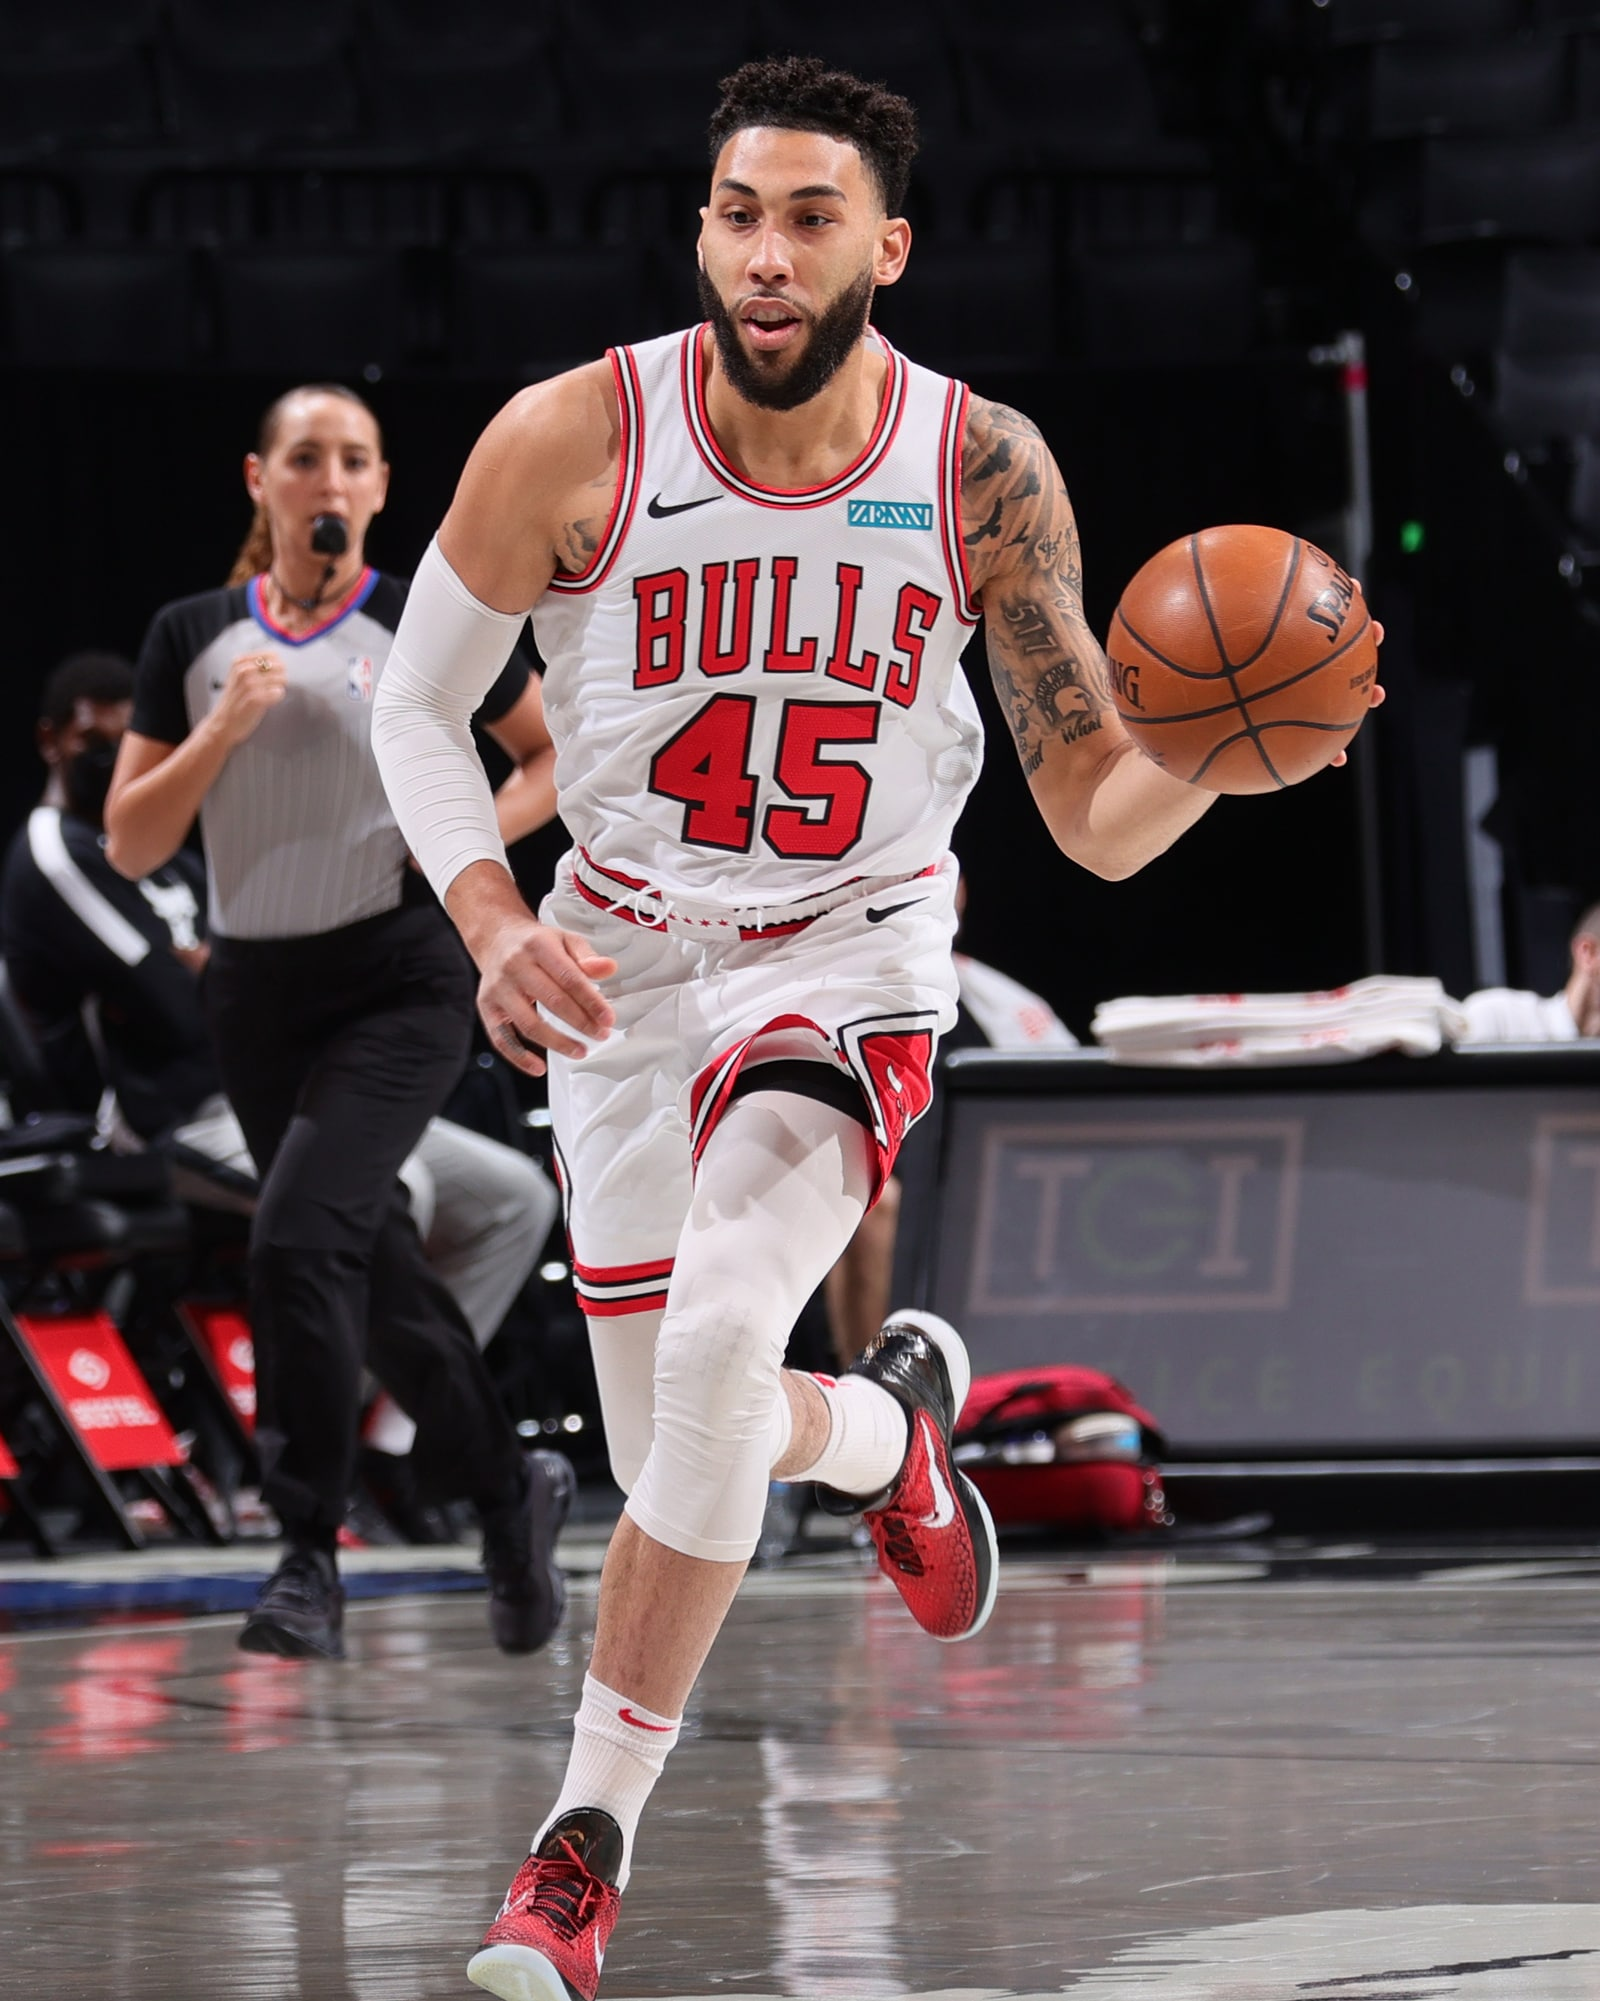 Denzel Valentine brings the ball up